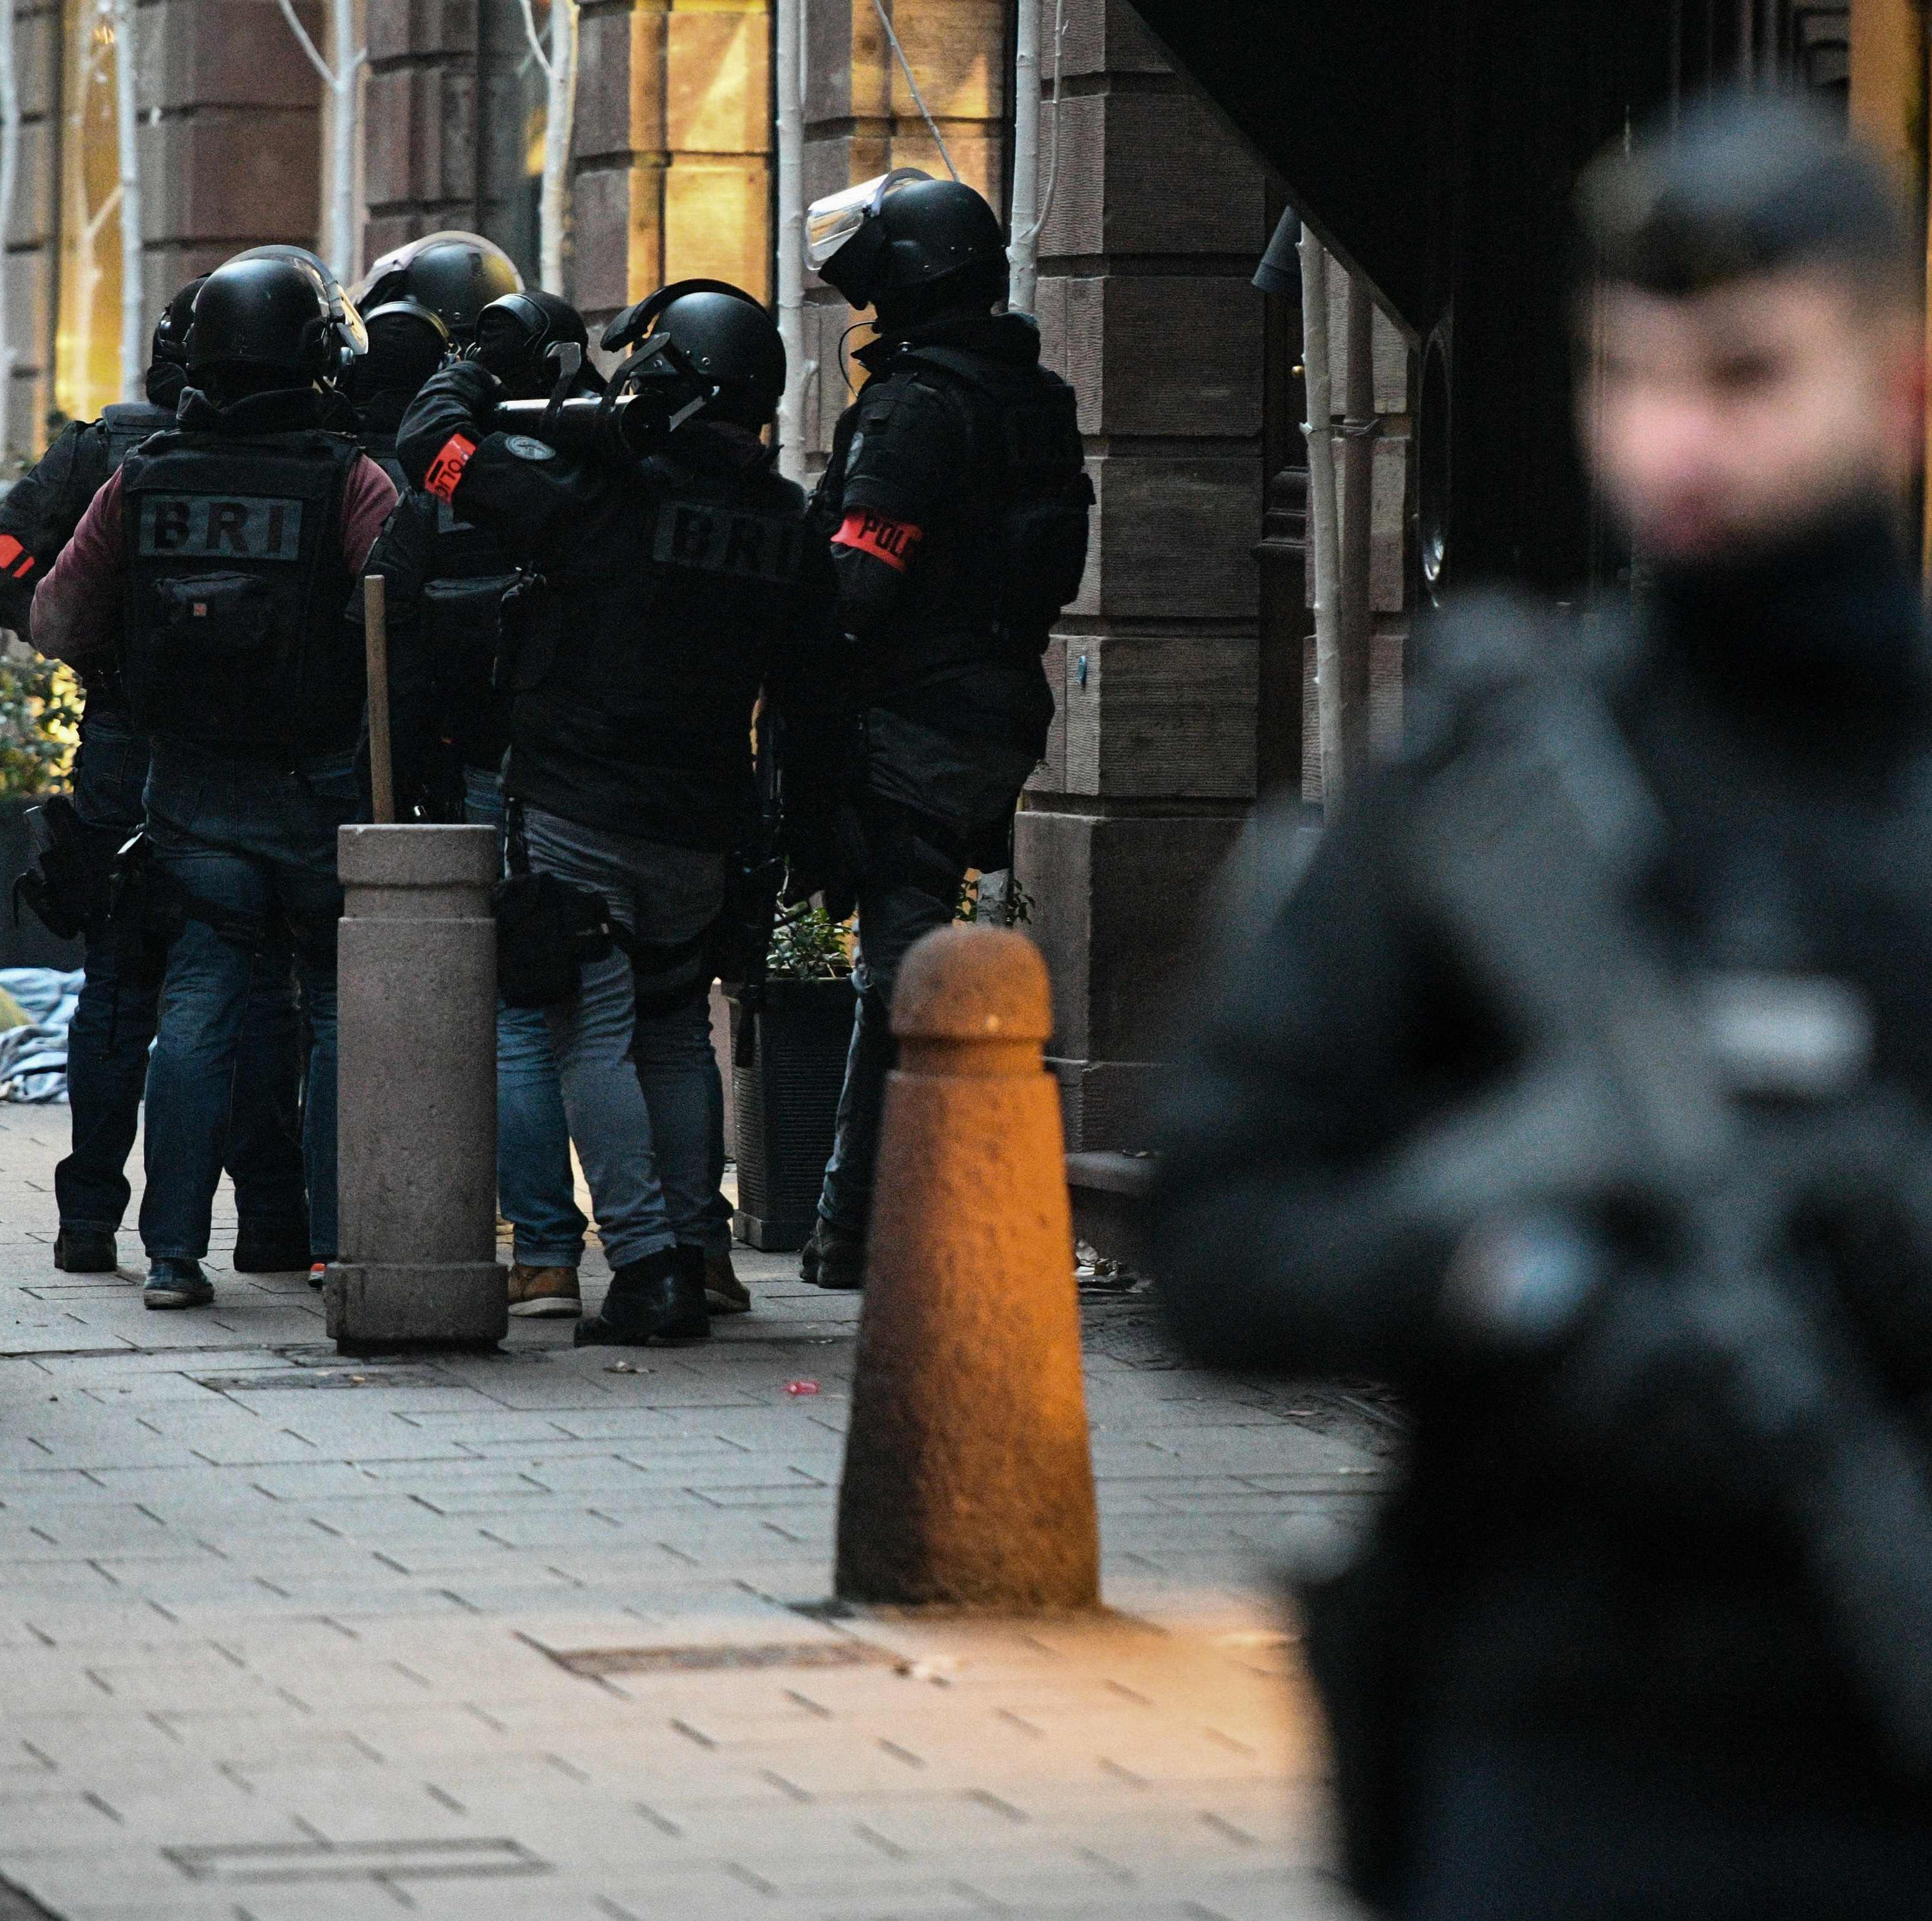 Members of the French special forces BRI (Research and Intervention Brigade -  Brigades de recherche et d'intervention) conduct searches on December 12, 2018 for the gunman who opened fire near a Christmas market in Strasbourg, eastern France, the night before. - Hundreds of security forces were deployed in the hunt for a lone gunman who killed at least three people and wounded a dozen others at the famed Christmas market in Strasbourg, with the French government raising the security alert level and reinforcing border controls.